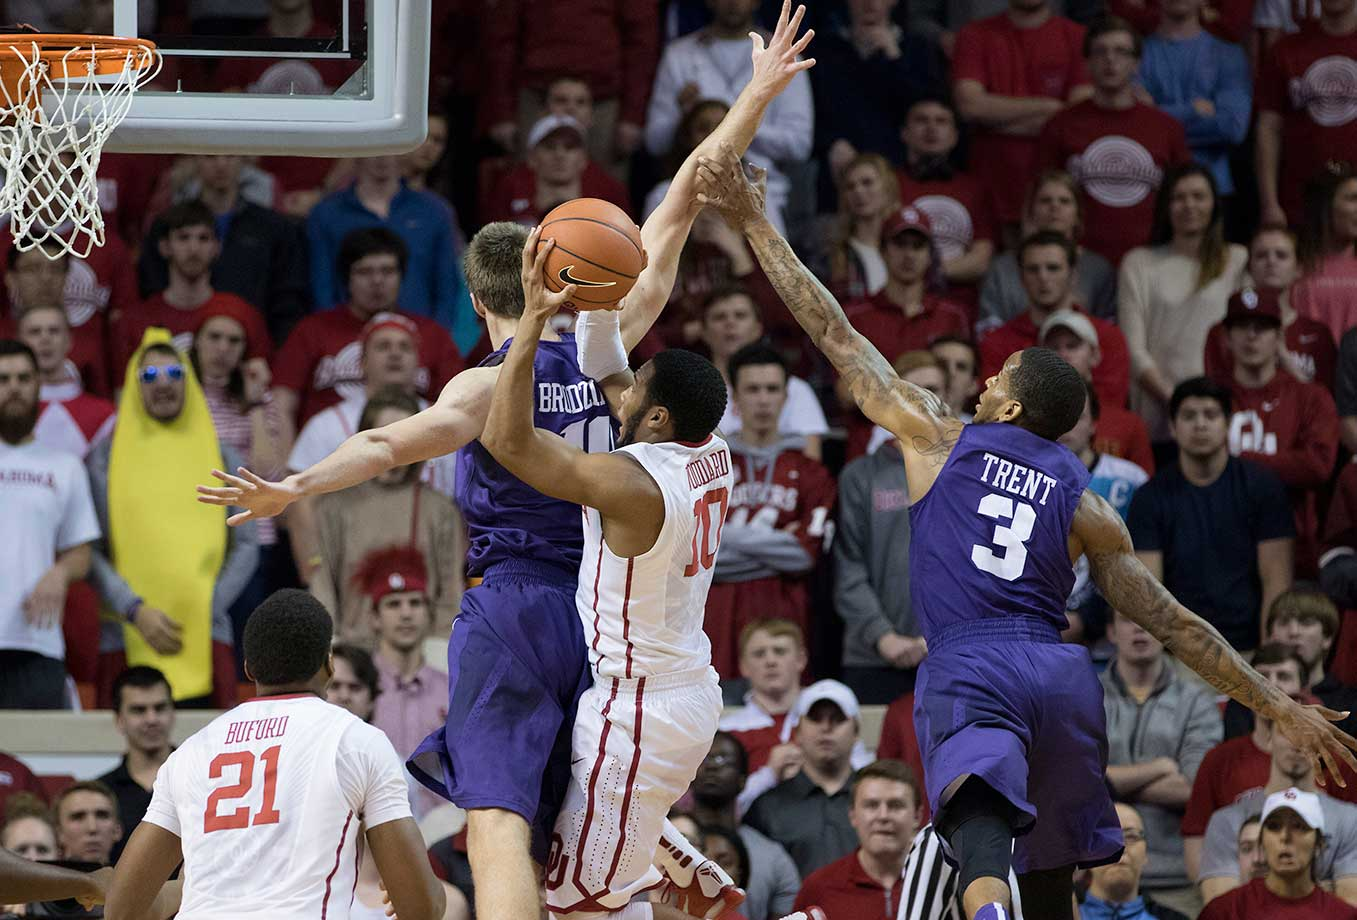 Vladimir Brodziansky and Malique Trent of the TCU Horned Frogs defend against Jordan Woodard of the Oklahoma Sooners at the Lloyd Noble Center in Norman, Okla.